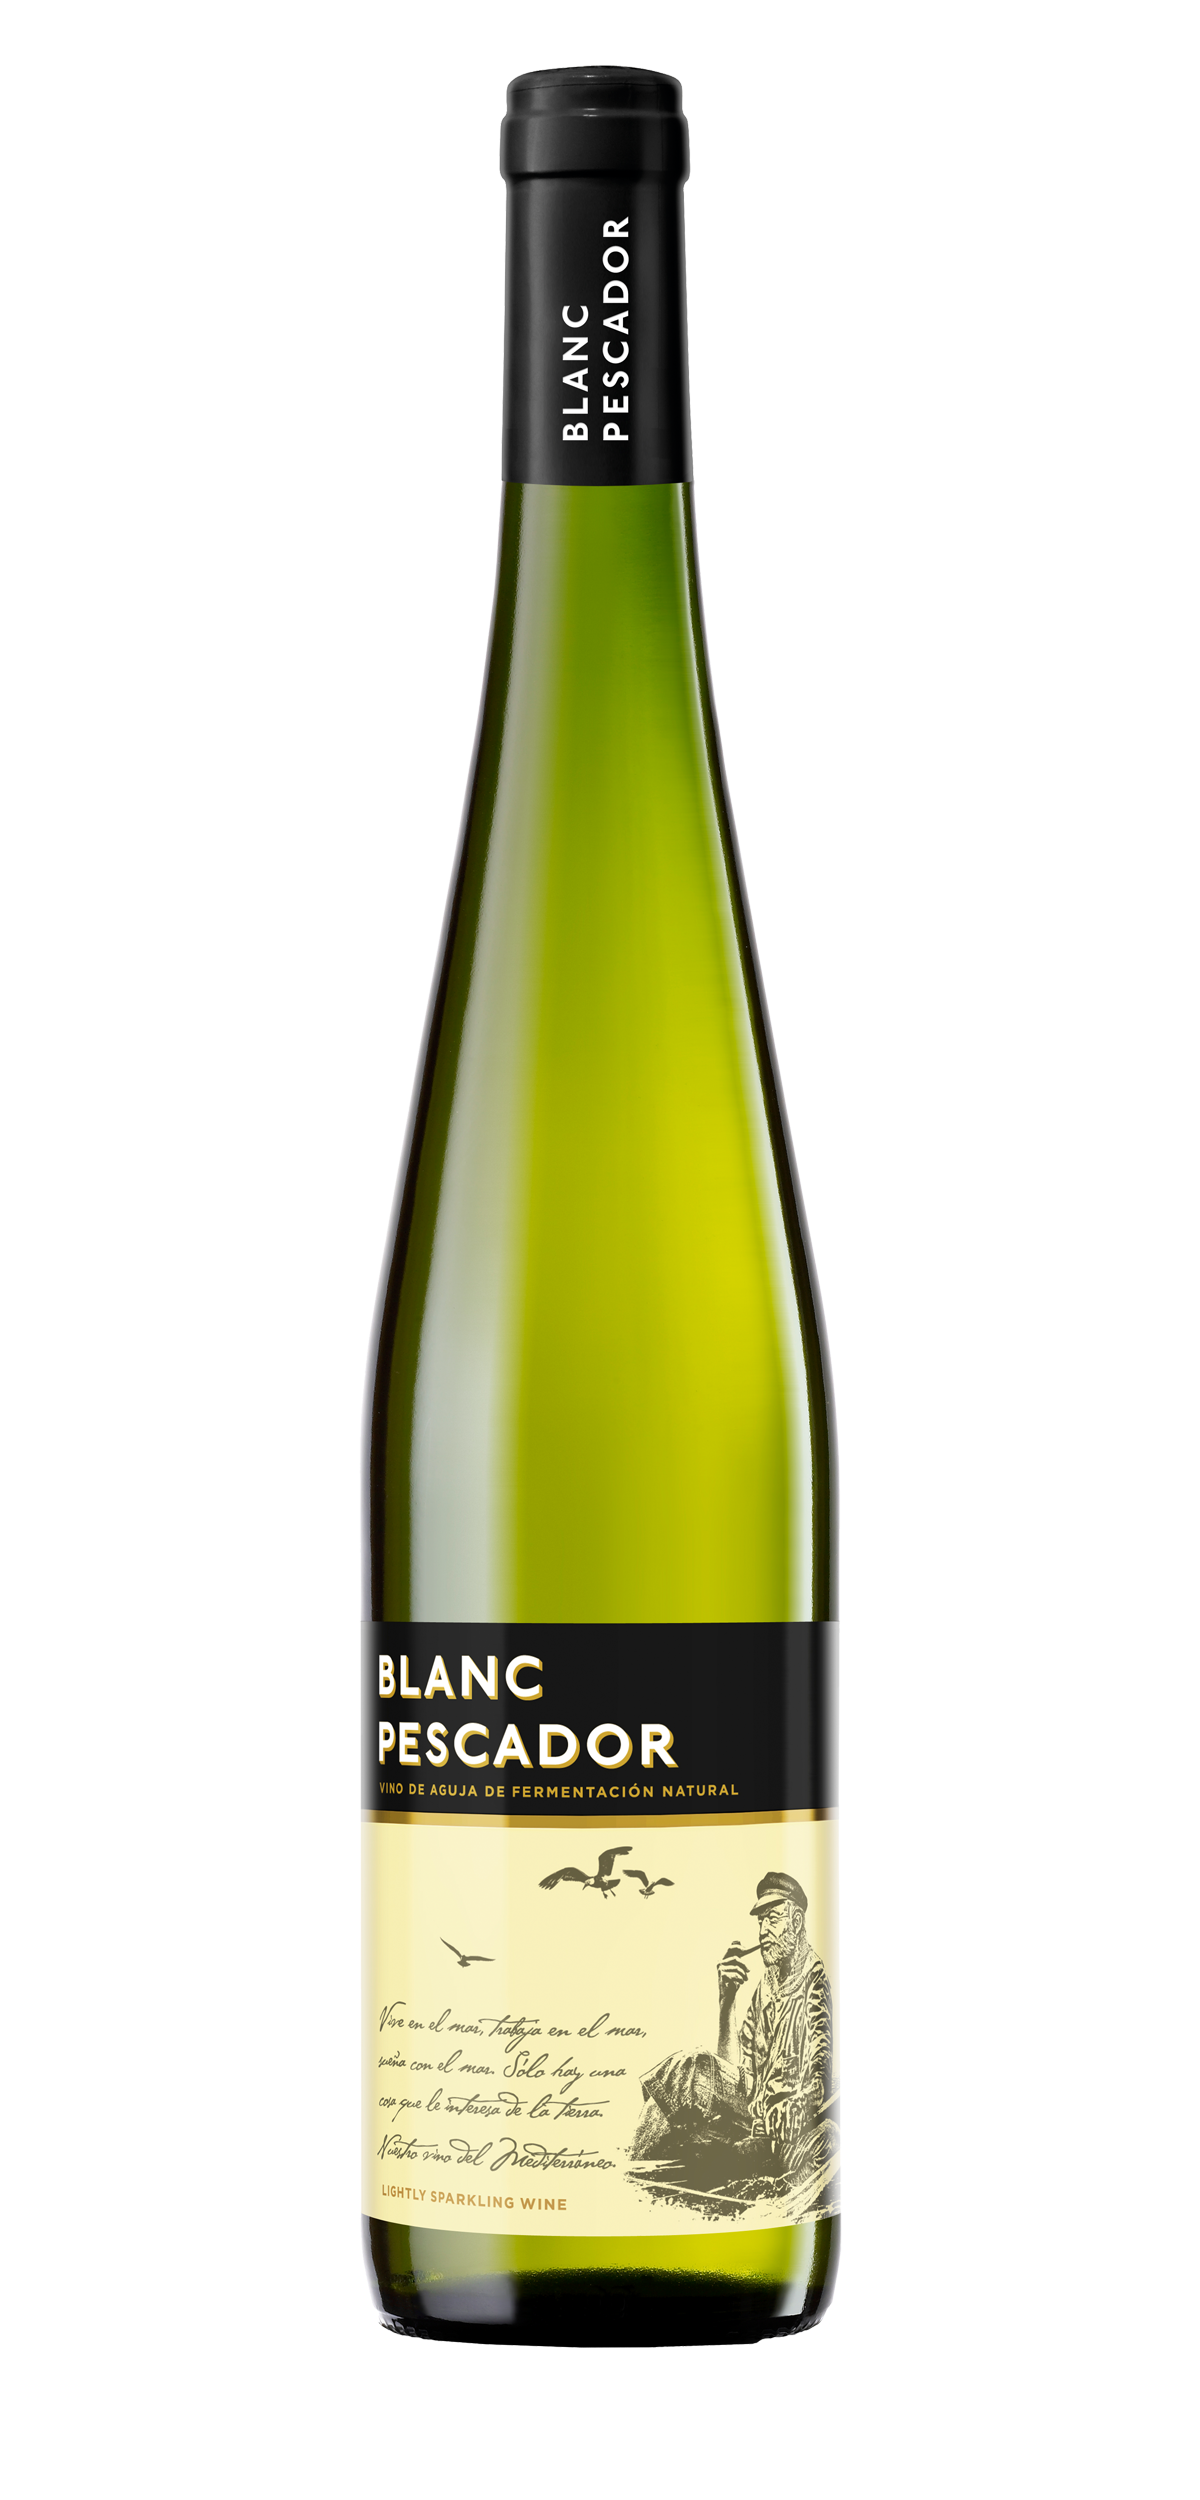 Blanc Pescador wine bottle design